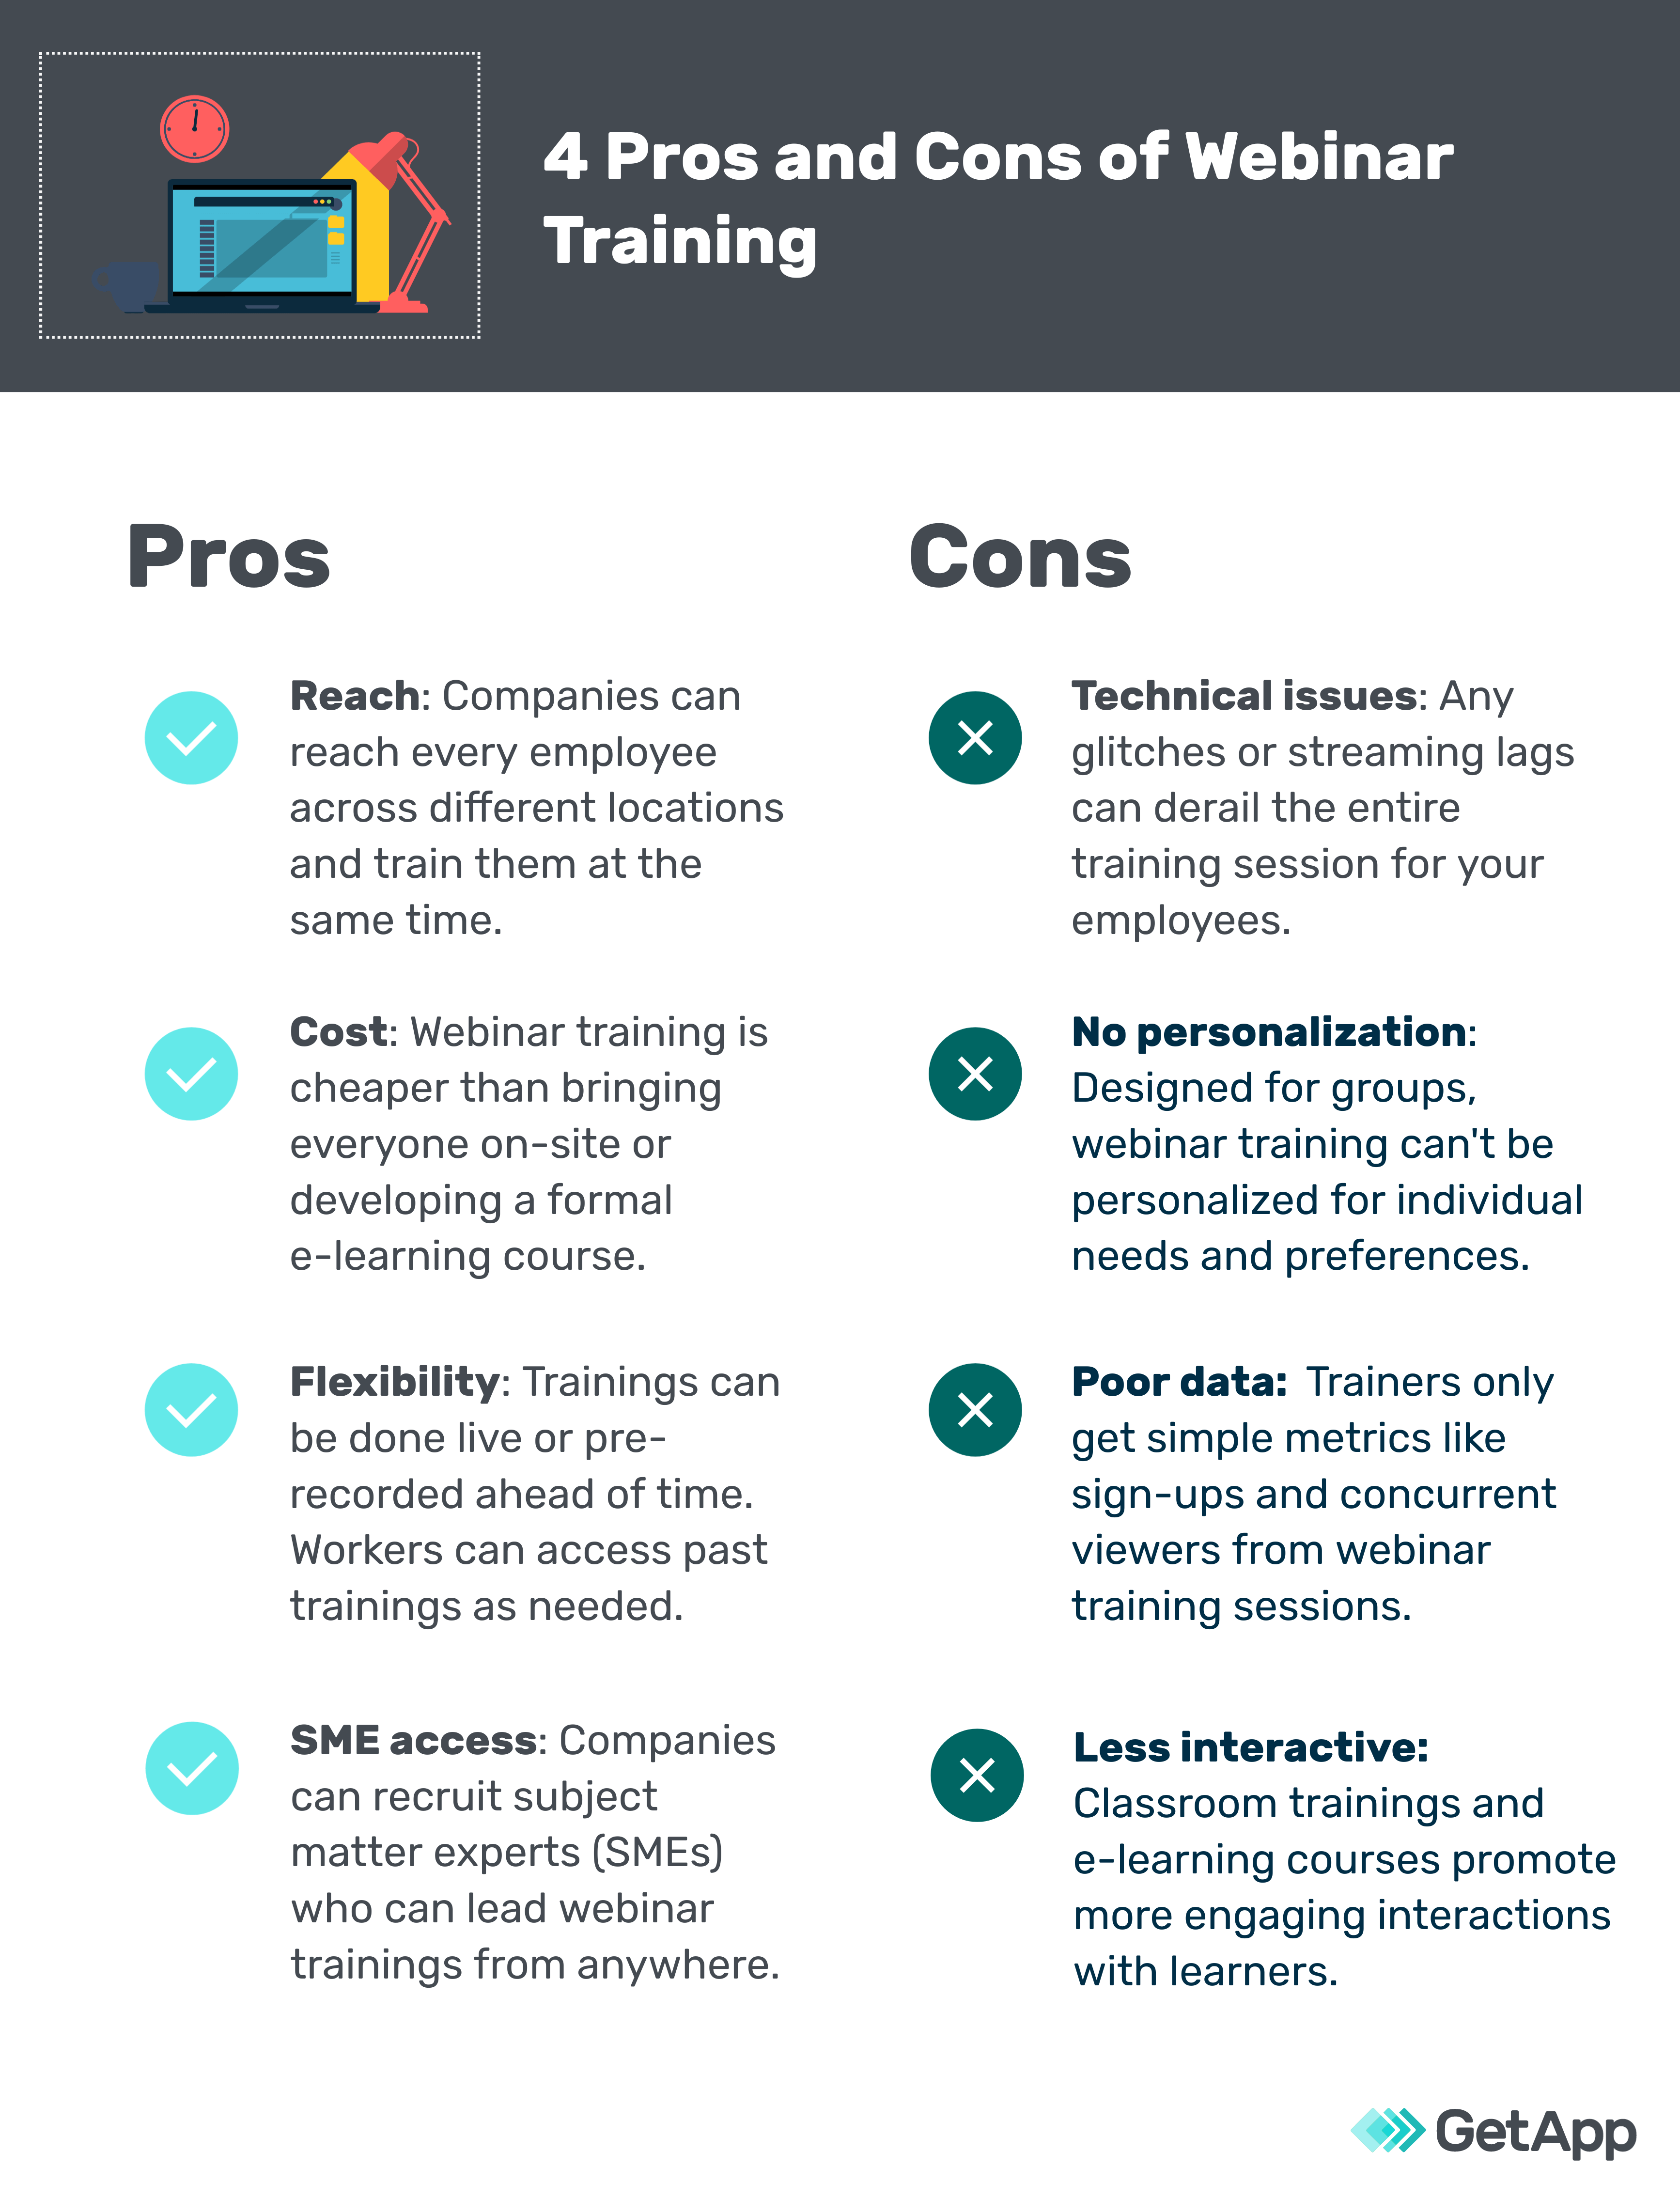 4 pros and 4 cons of webinar training